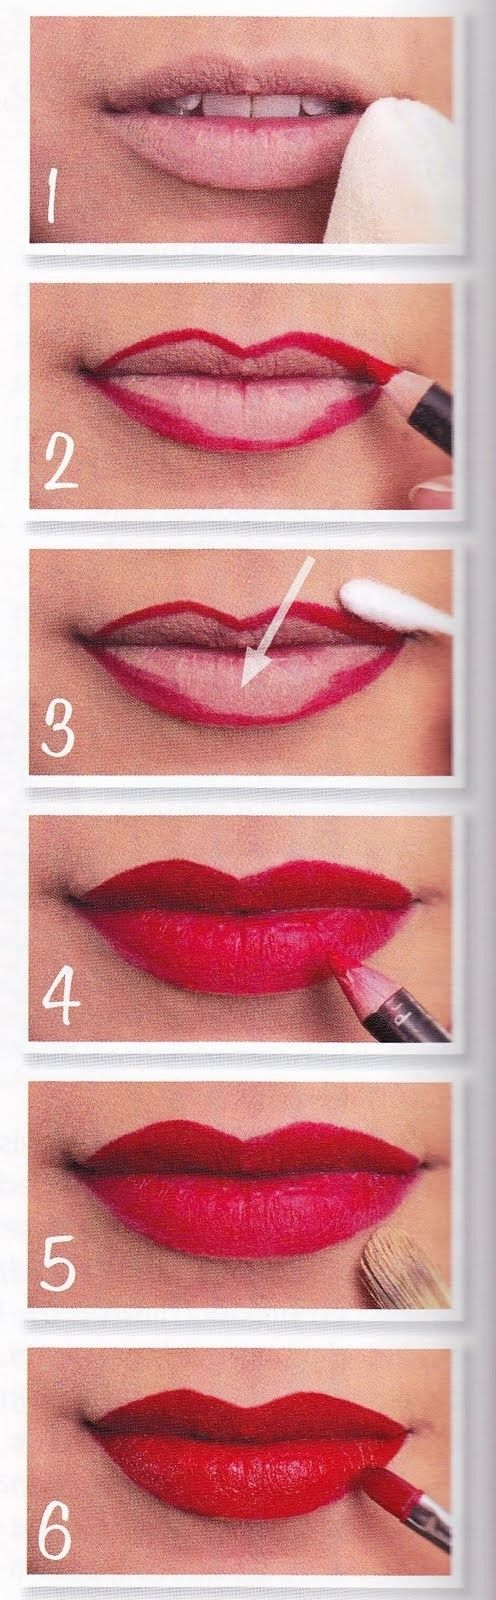 Find This Pin And More On Makeup Makeup Makeup! How To Properly Apply